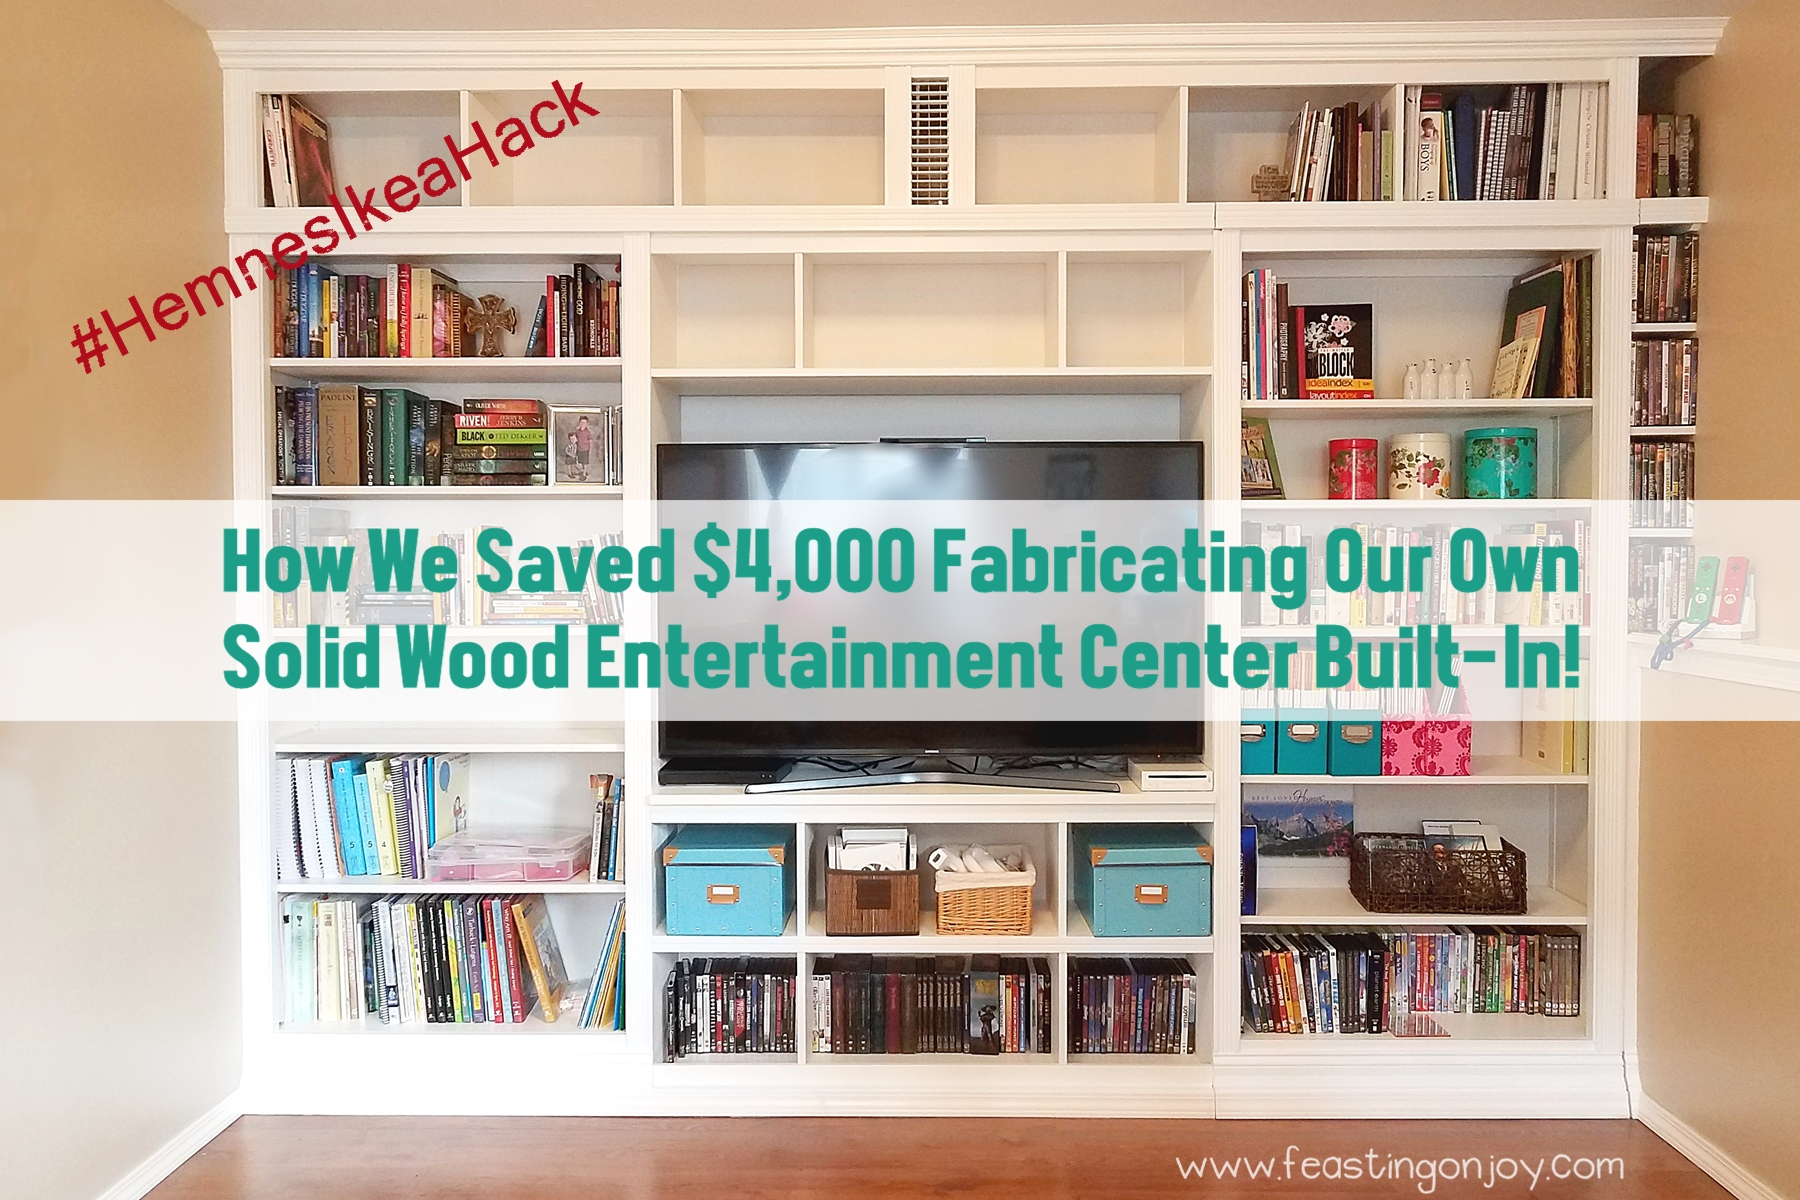 How We Saved $4,000 Fabricating Our Own Solid Wood Entertainment ...